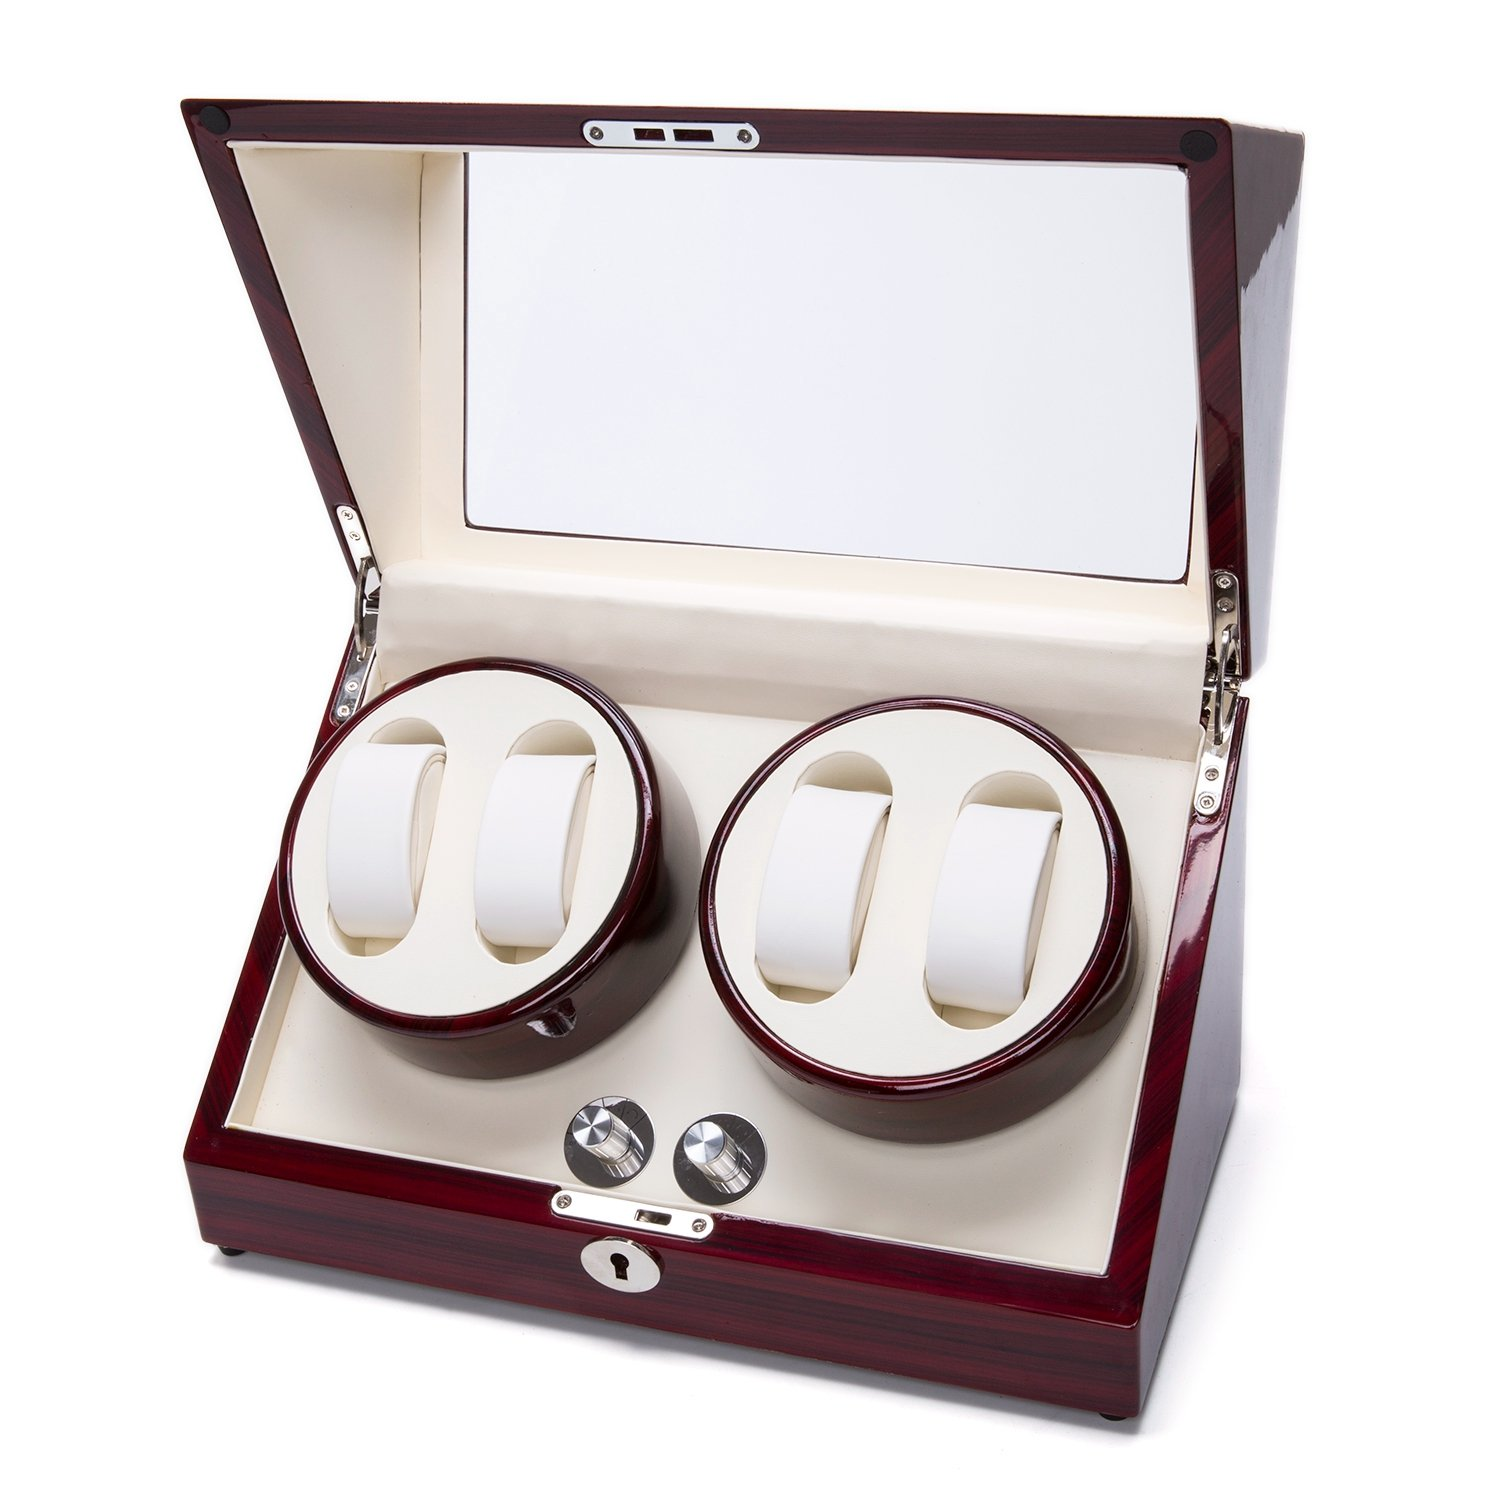 Watch Winder Case Automatic Quad Watches Jewelry Storage Cases Display Box by Gregarder (Image #2)